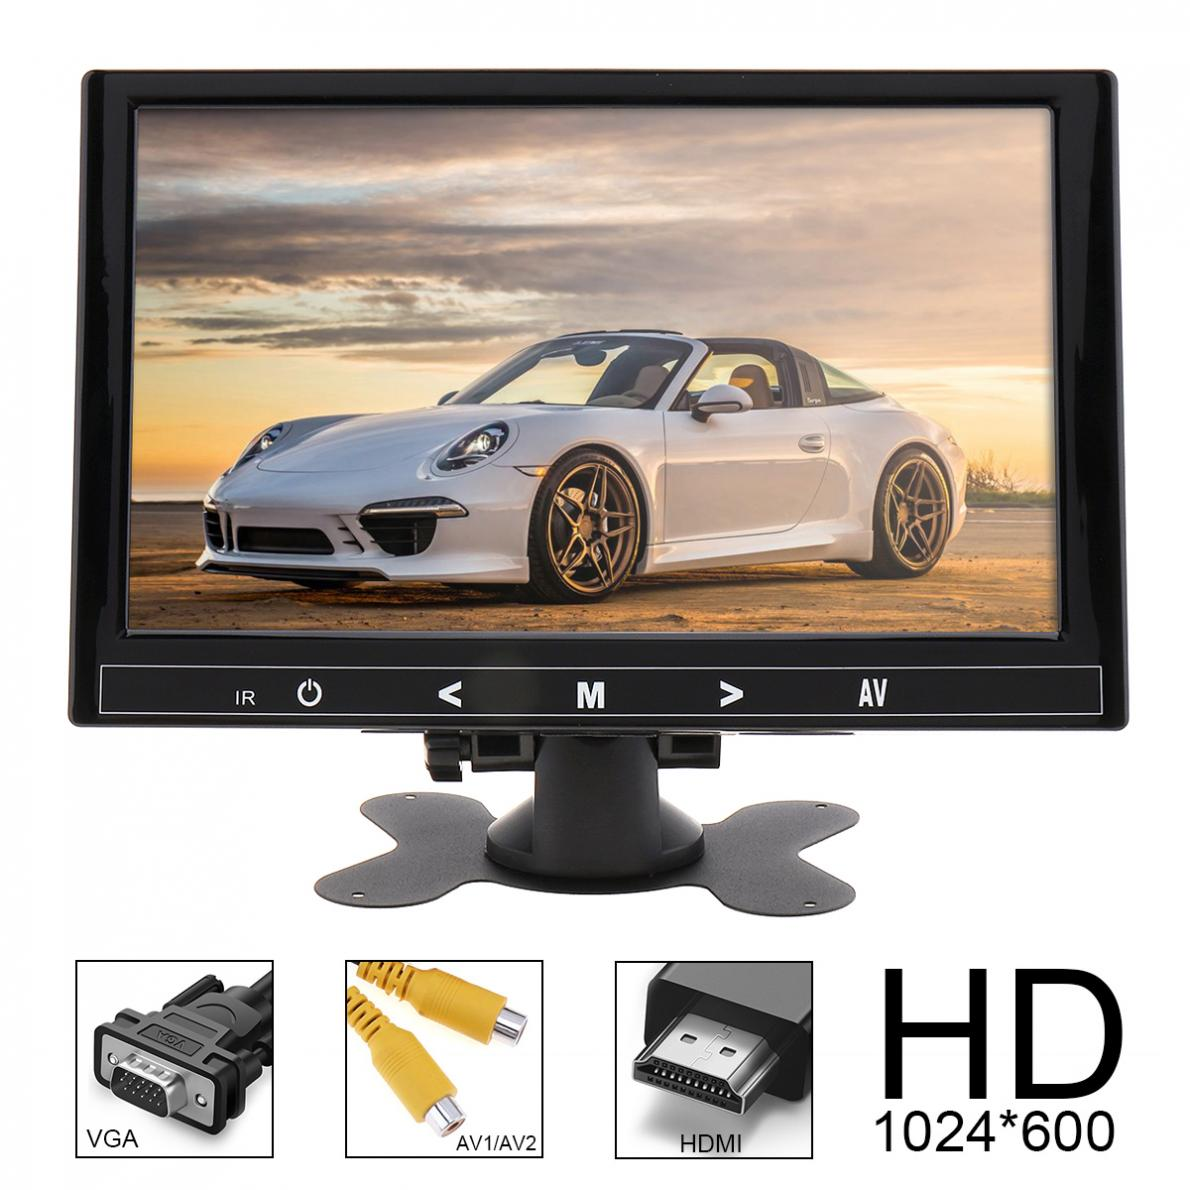 9 Inch 16:9 HD 1024*600 TFT LCD Car Rear View Monitor 2 Video Input DVD VCD Headrest Auto Monitor Support Audio Video HDMI VGA цена 2017